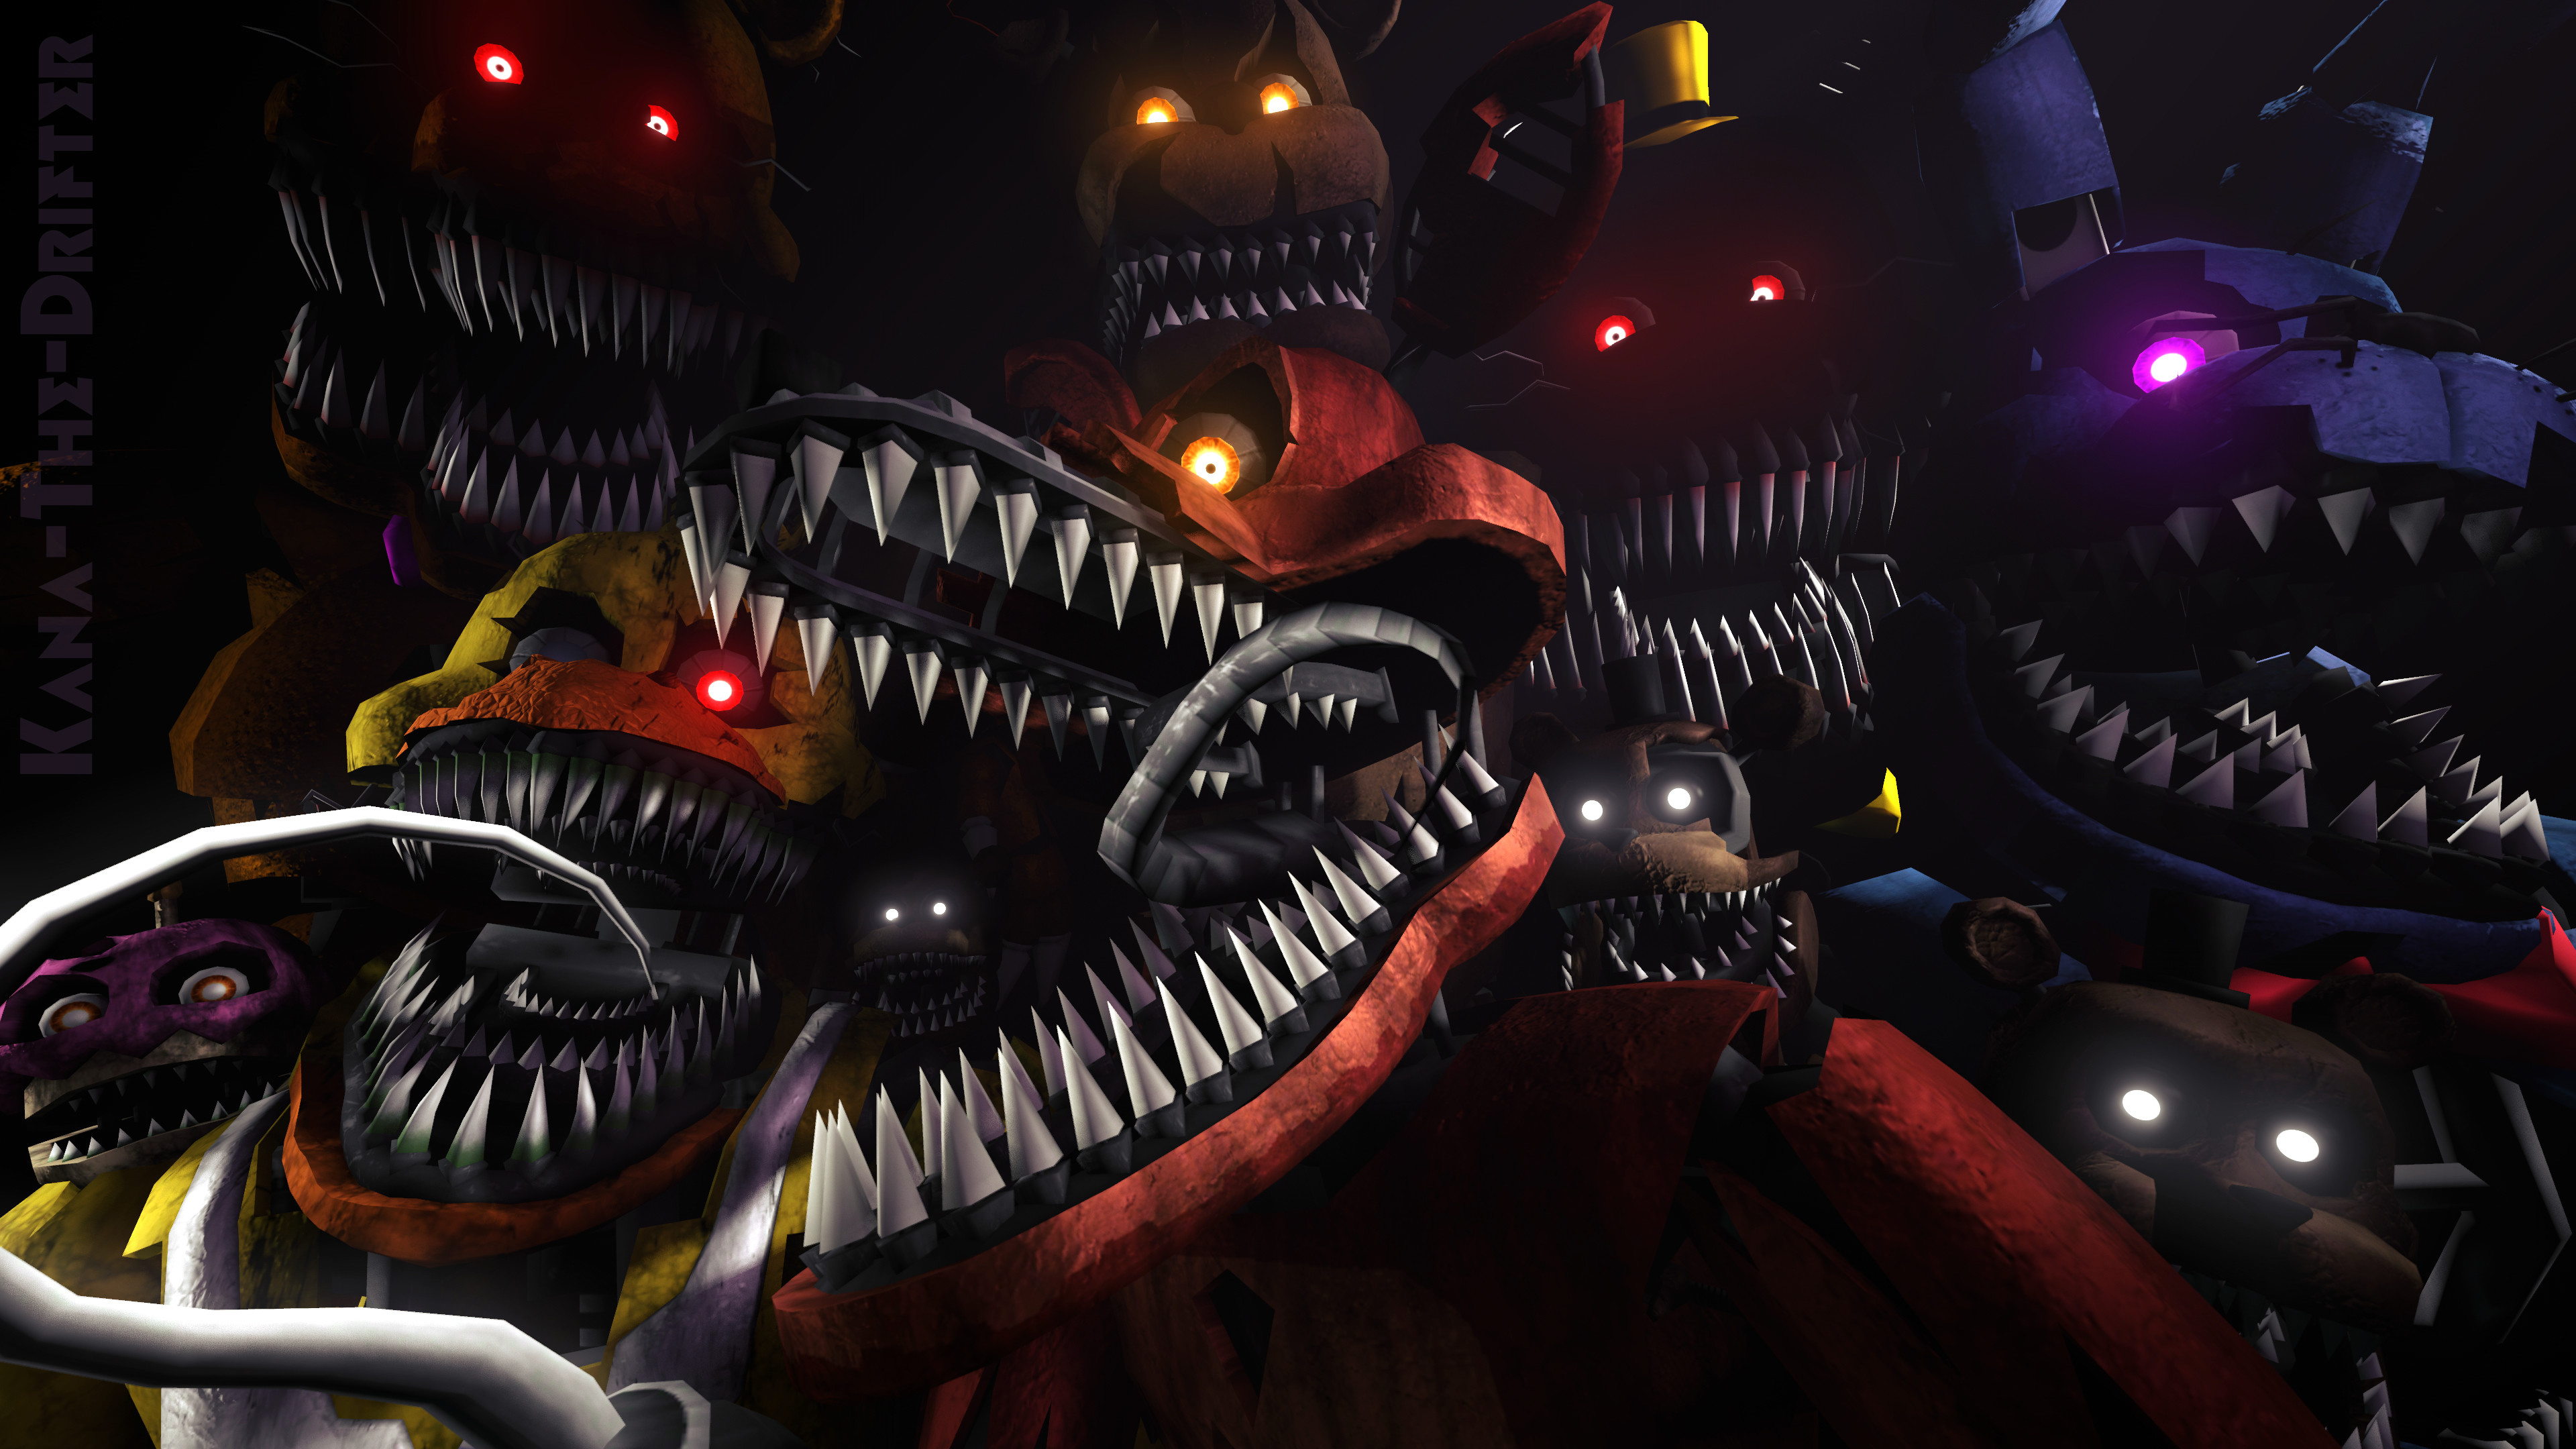 … We'll Stay Here Forever (FNAF SFM Wallpaper) by Kana-The-